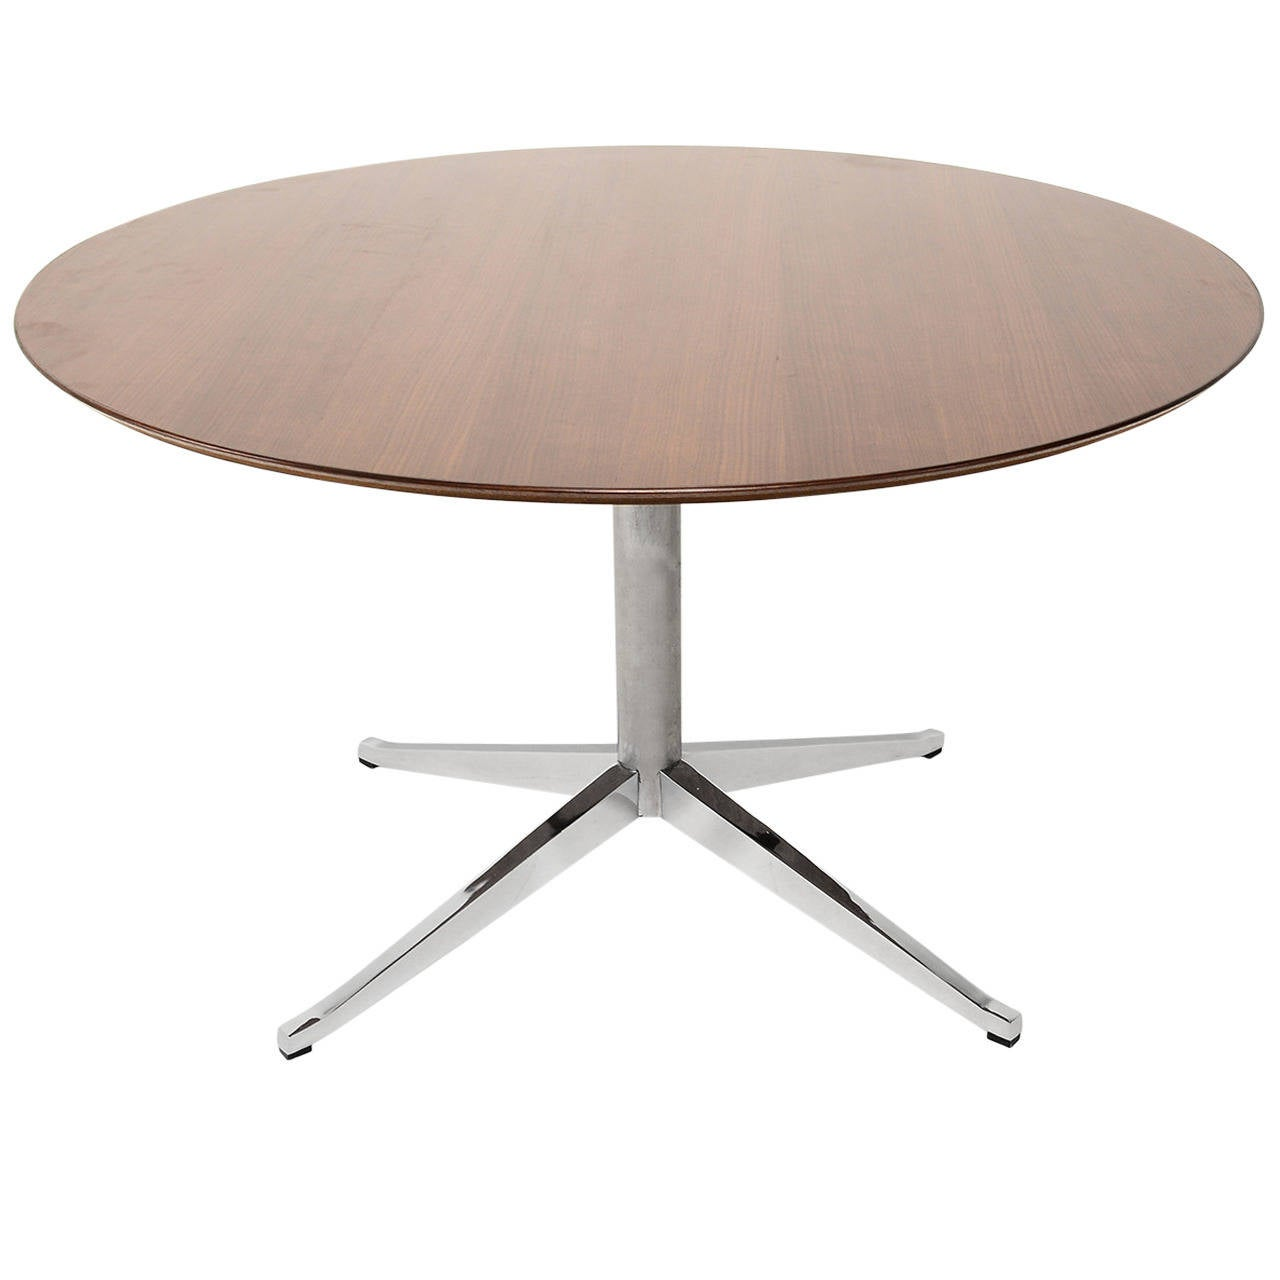 Knoll round conference or dining table for sale at 1stdibs for Round dining room tables for sale